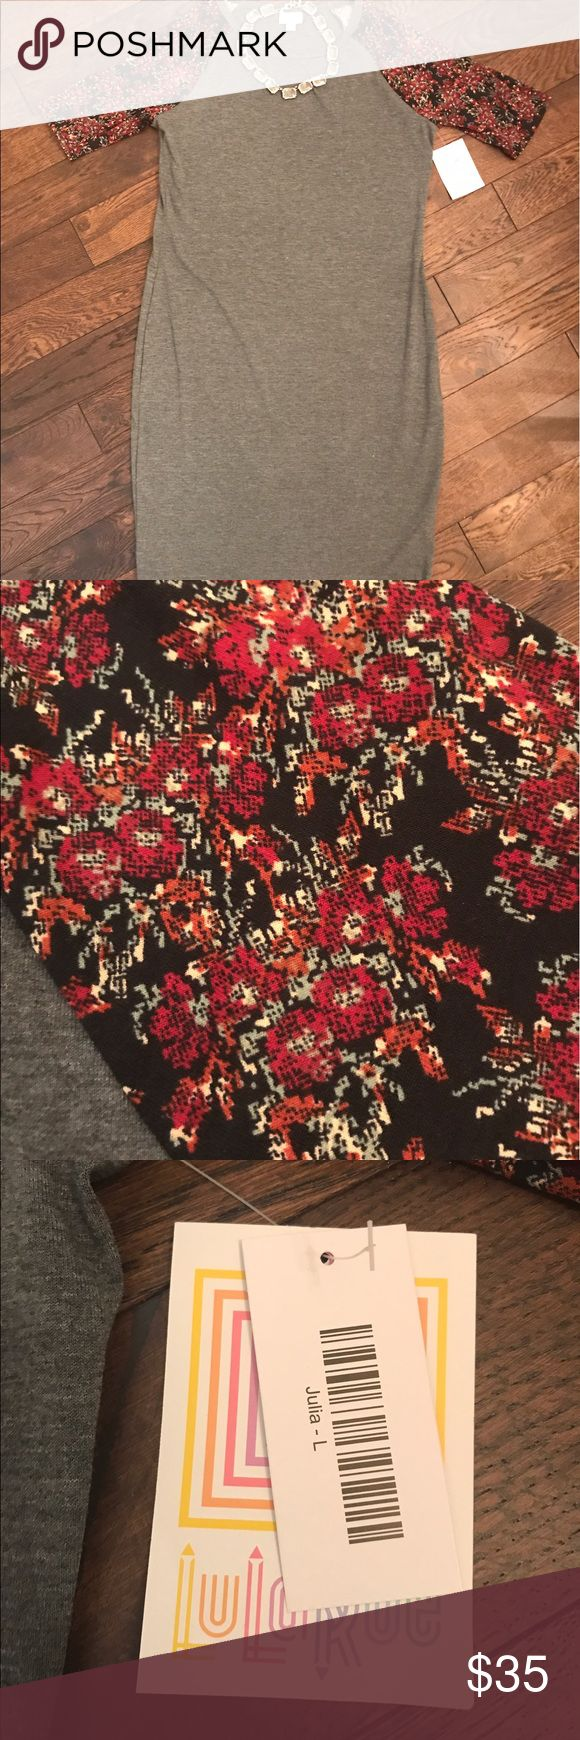 LuLaRoe Julia Gray and Floral Dress NWT (I purchased the wrong size). Dark gray with red Floral raglan sleeves.       The Julia dress is a form fitting, knee- length, knit dress with mid-length sleeves and a high neckline. Its simple silhouette makes the Julia dress a great canvas for layering and accessorizing. This dress is a staple for every season's wardrobe. It is feminine, flattering, and you may not ever want to take it off. LuLaRoe Dresses Midi